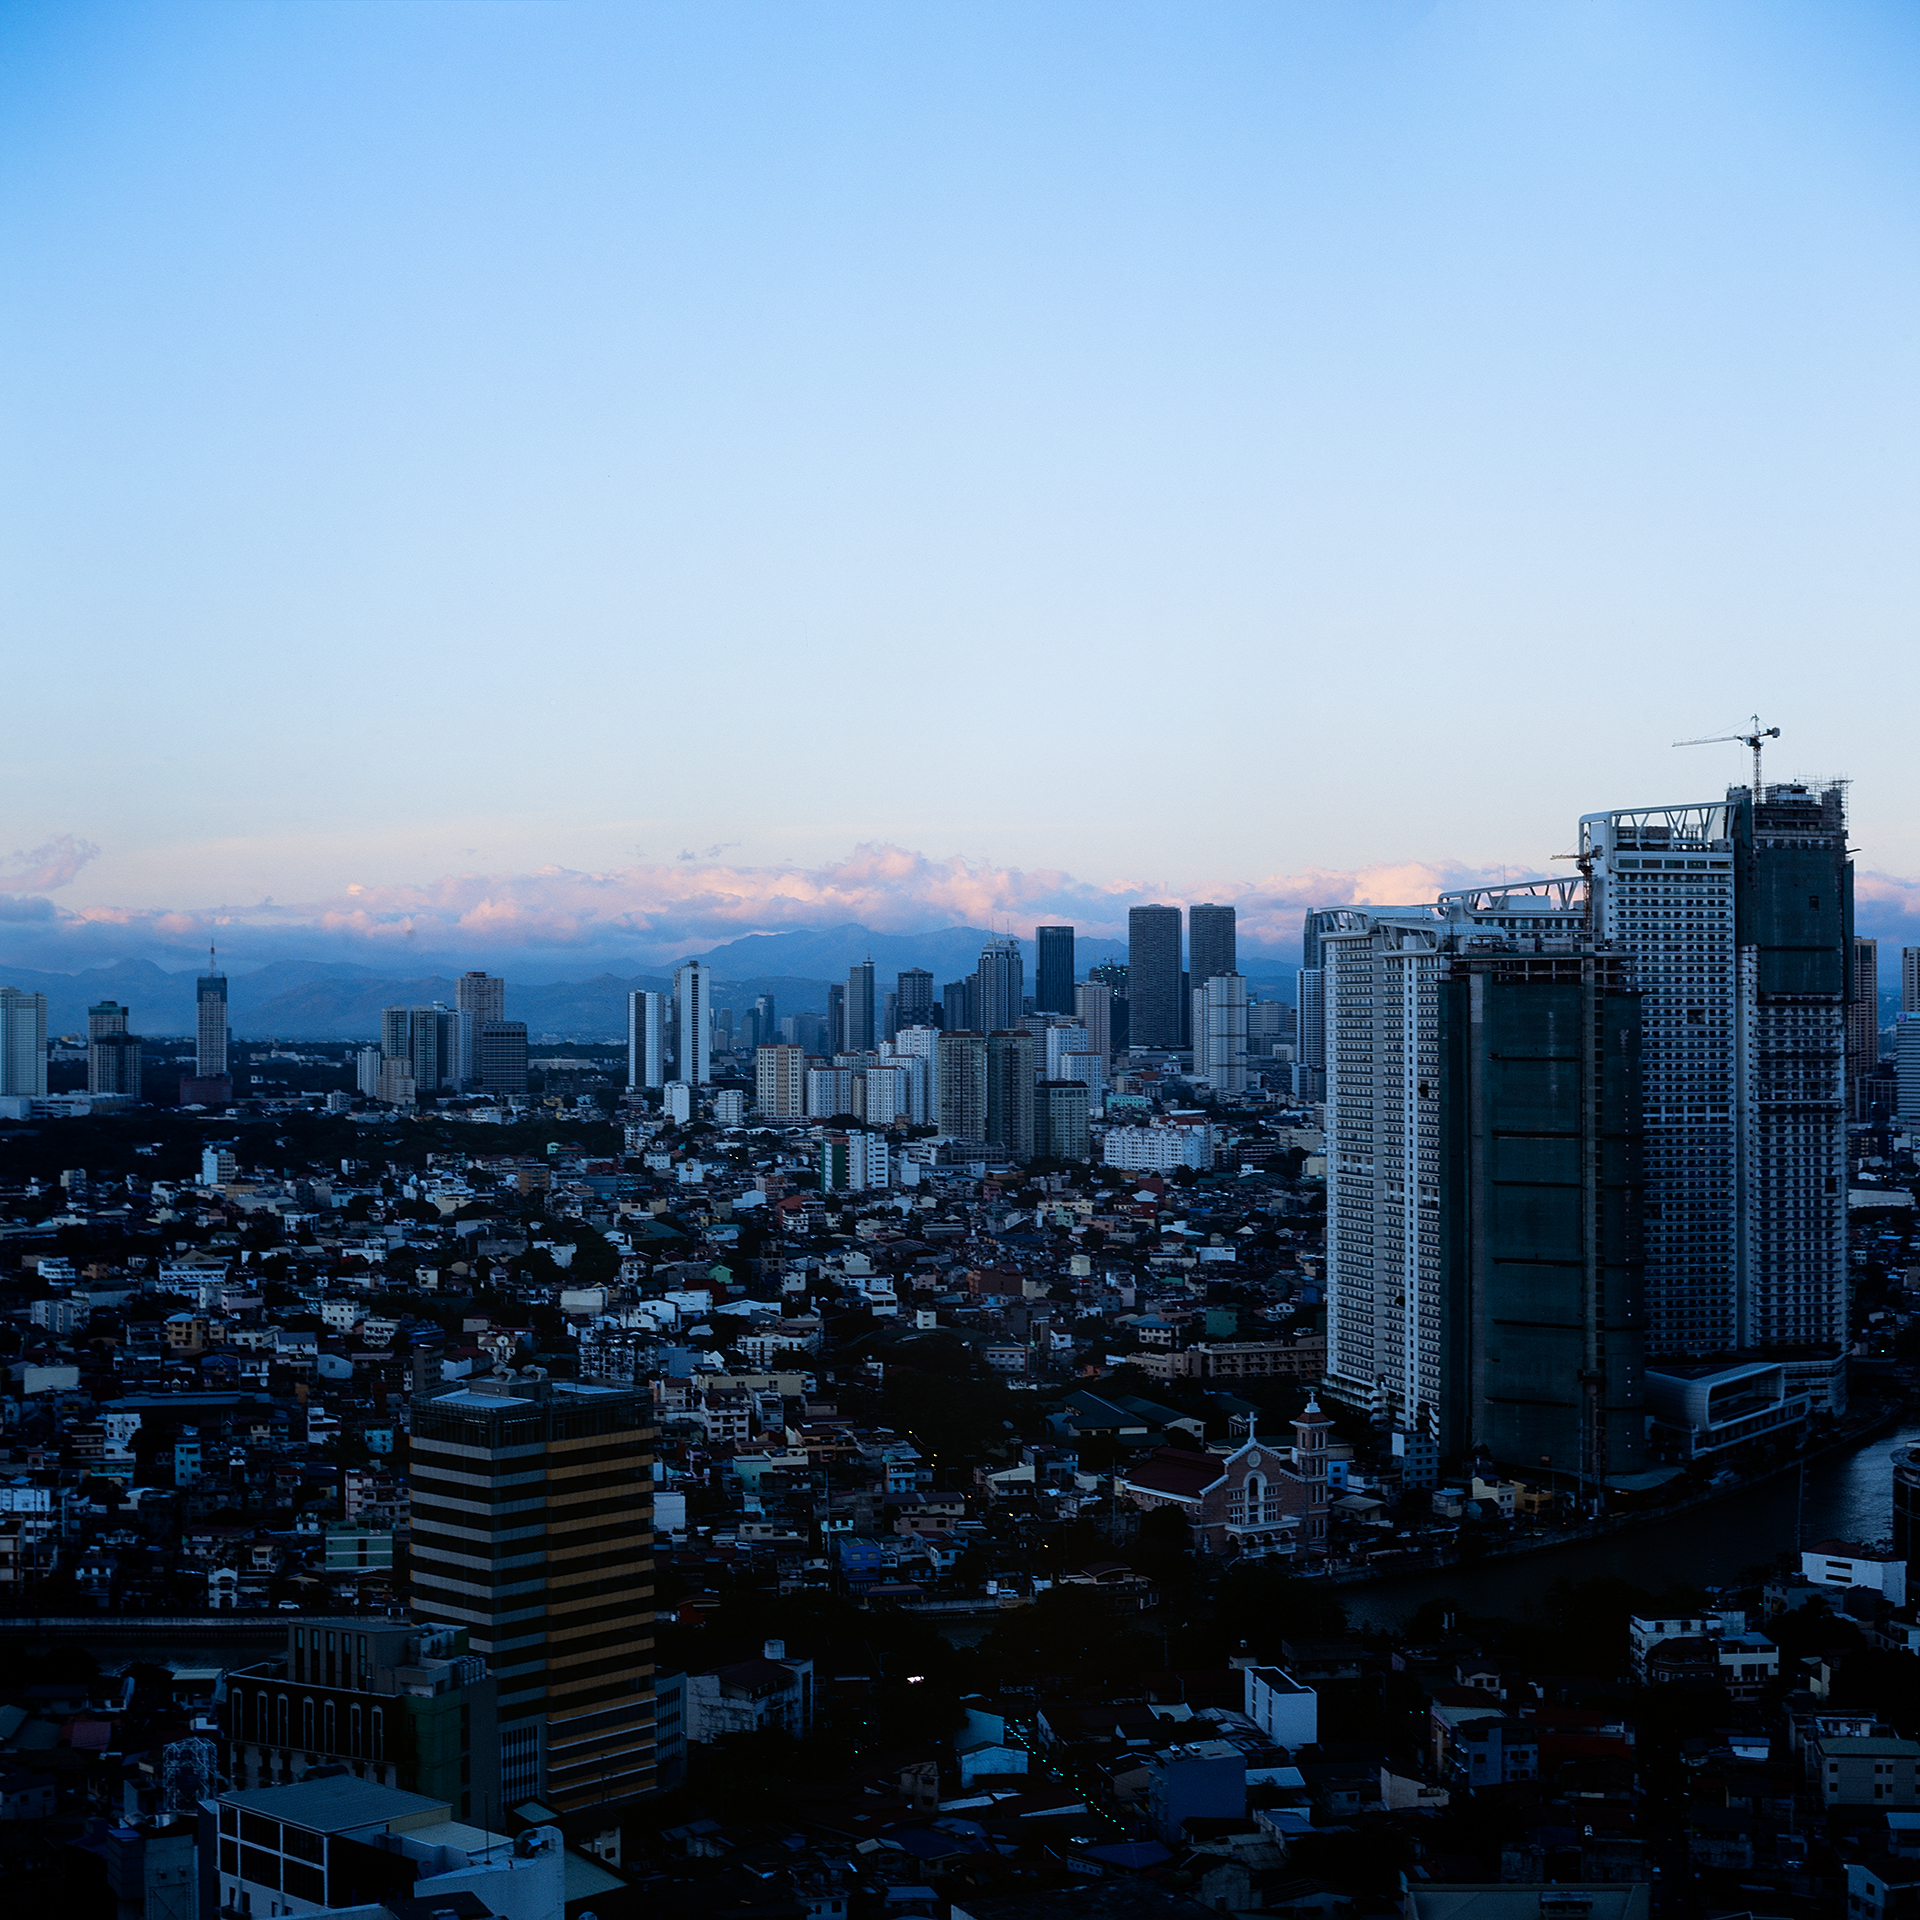 Almost sunset looking out over Metro Manila in the Philippines.